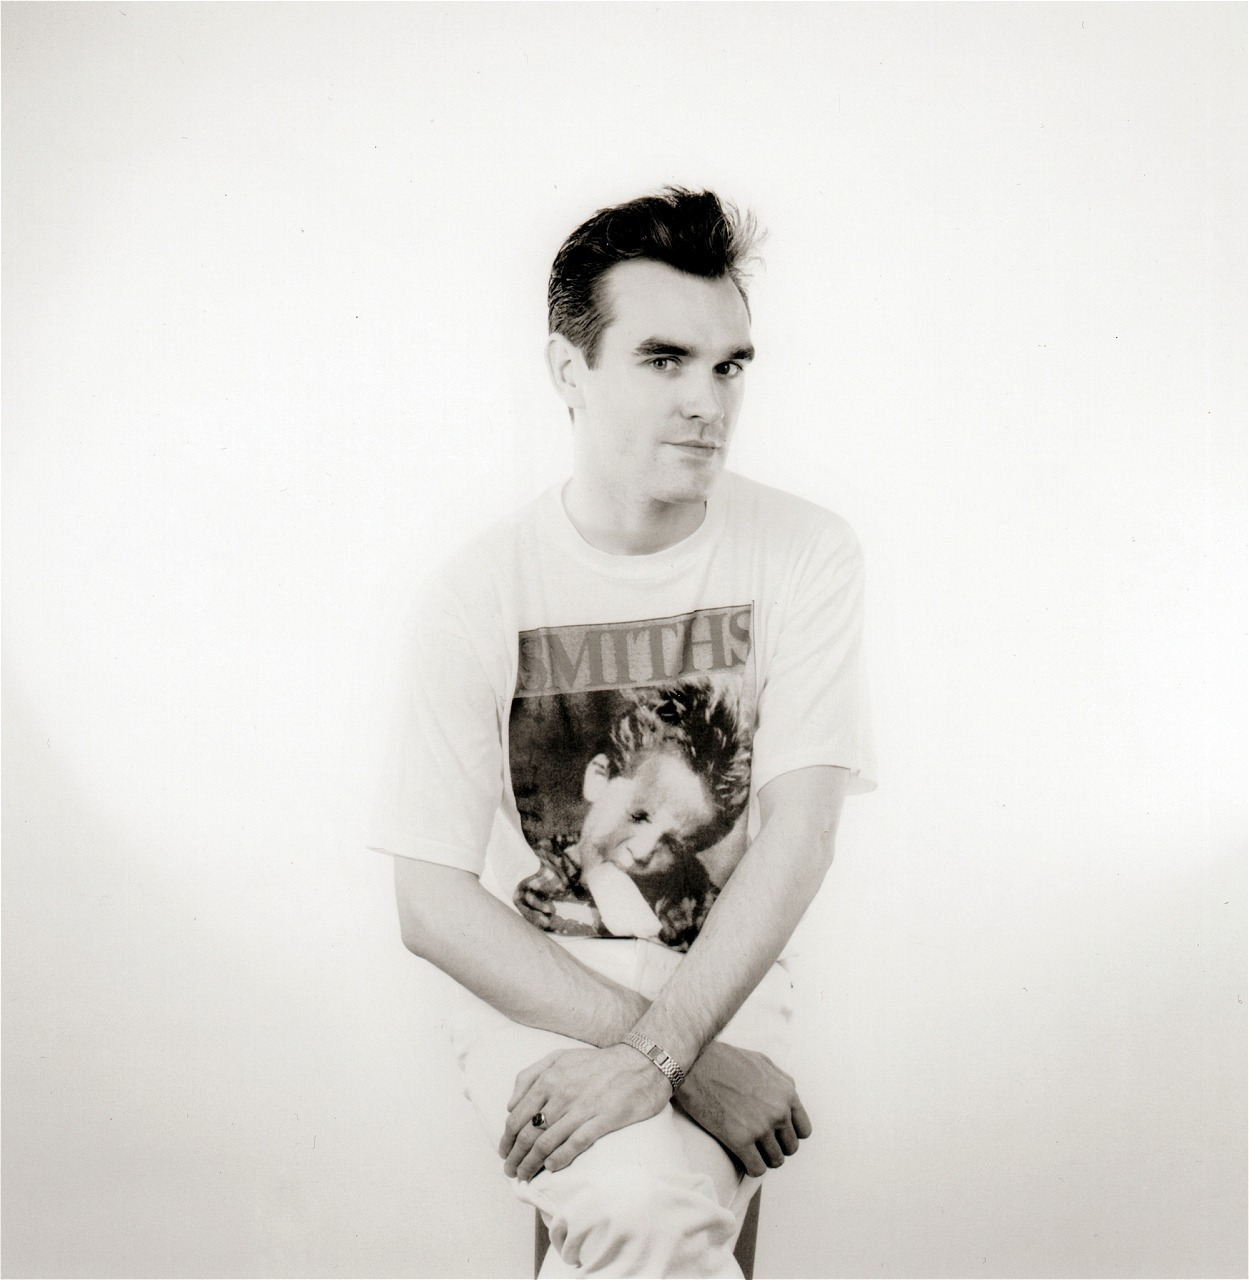 thischarmlessgirl:  Morrissey photographed by Gemma Levine in Cleveland, 1986. Bigger scan here too for those who want it. :)